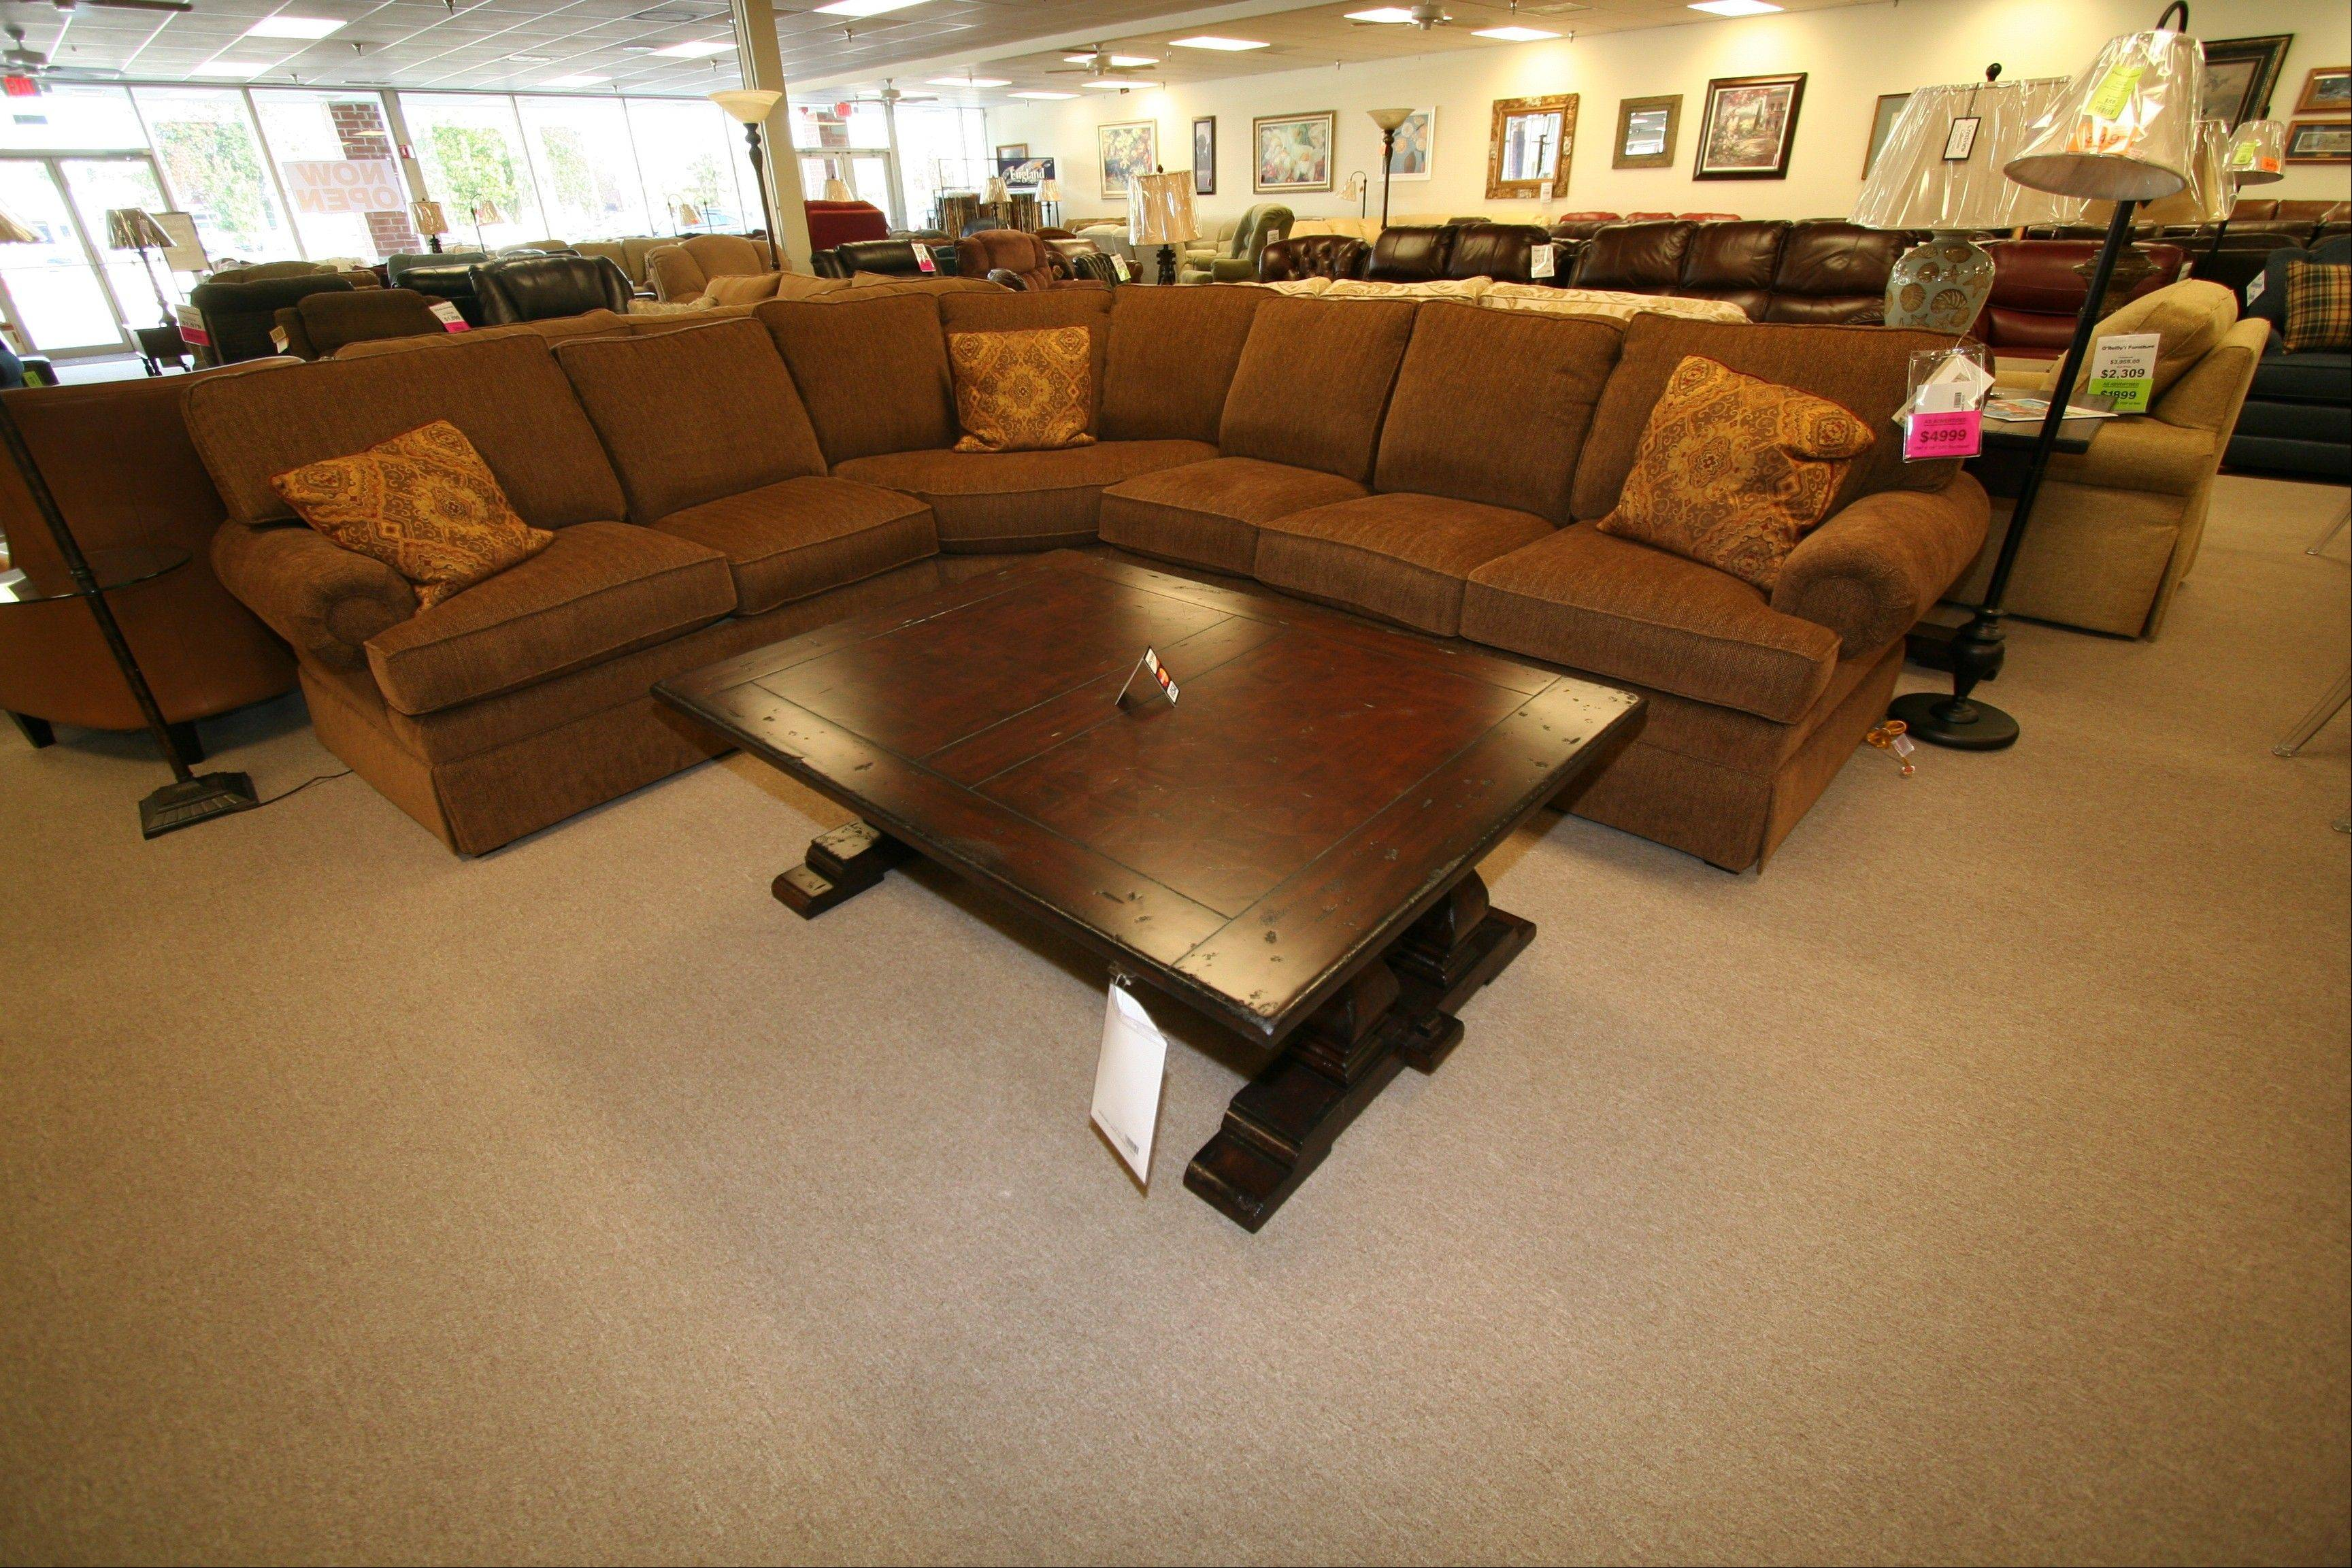 O'Reilly's Furniture sells a combination of leather and fabric sectionals, sofas and chairs.